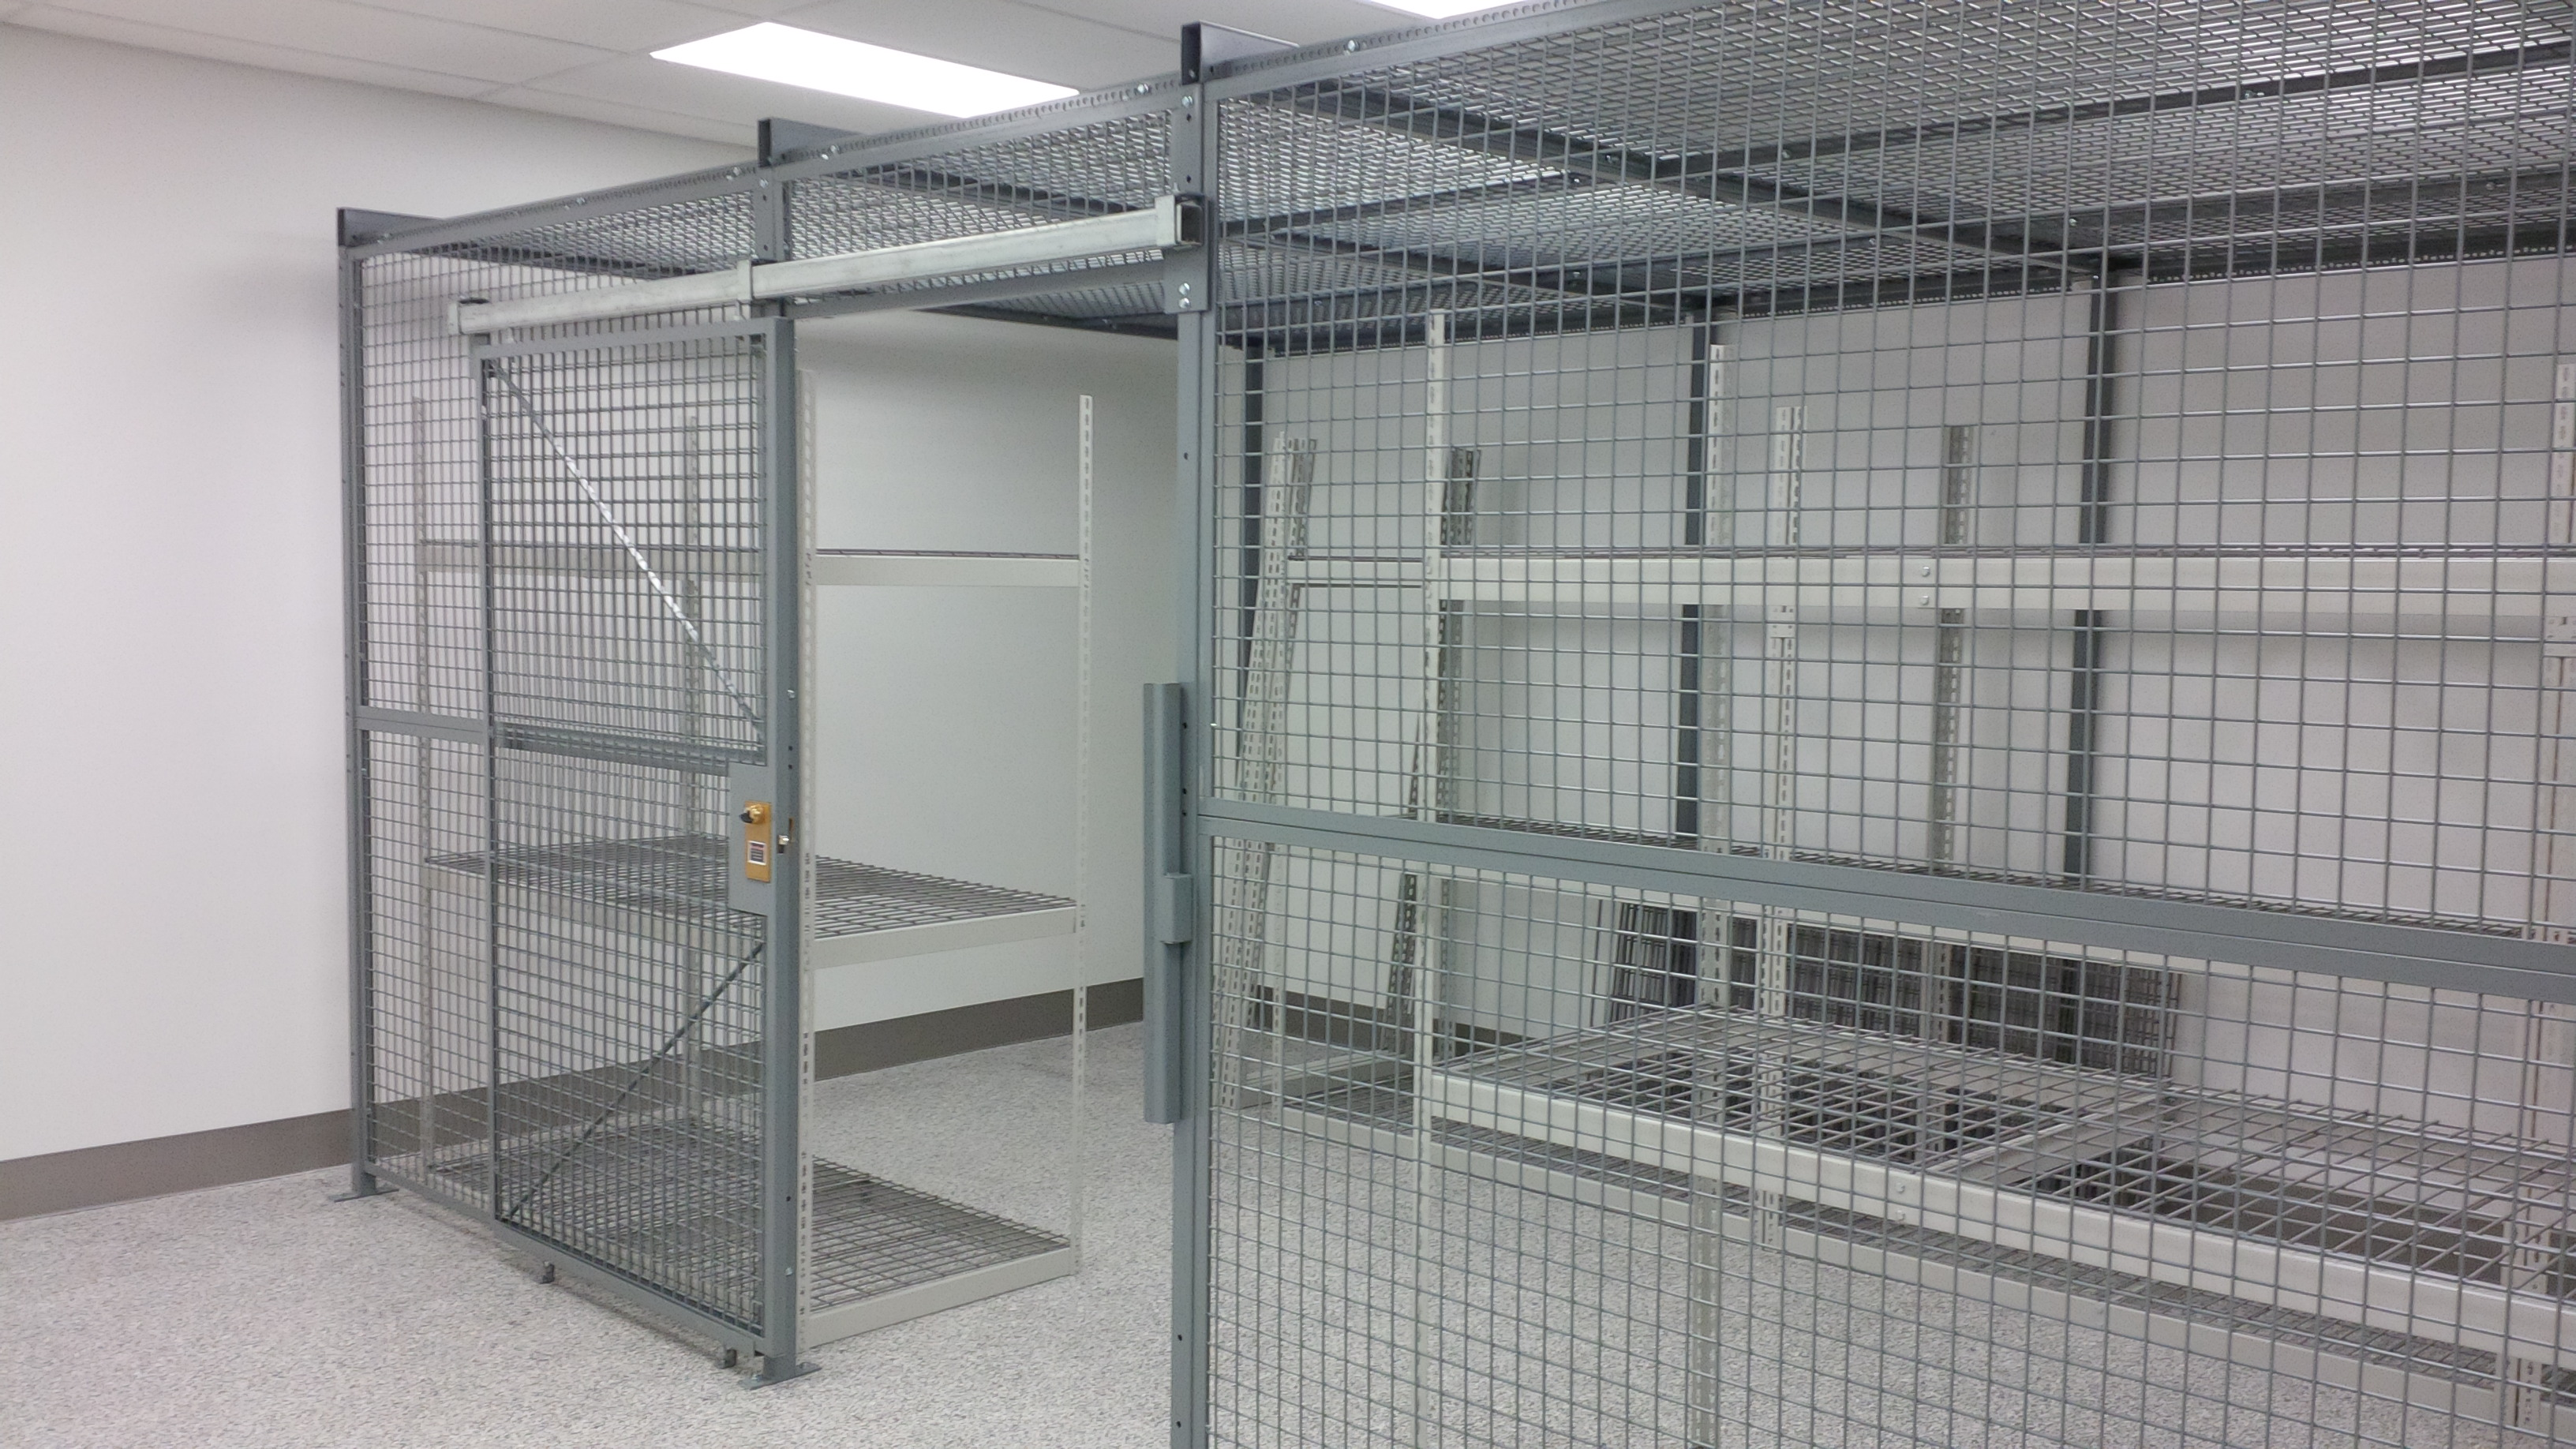 Fencing for Tool Cribs, OSHA Guards, Wire Racks Storage and More